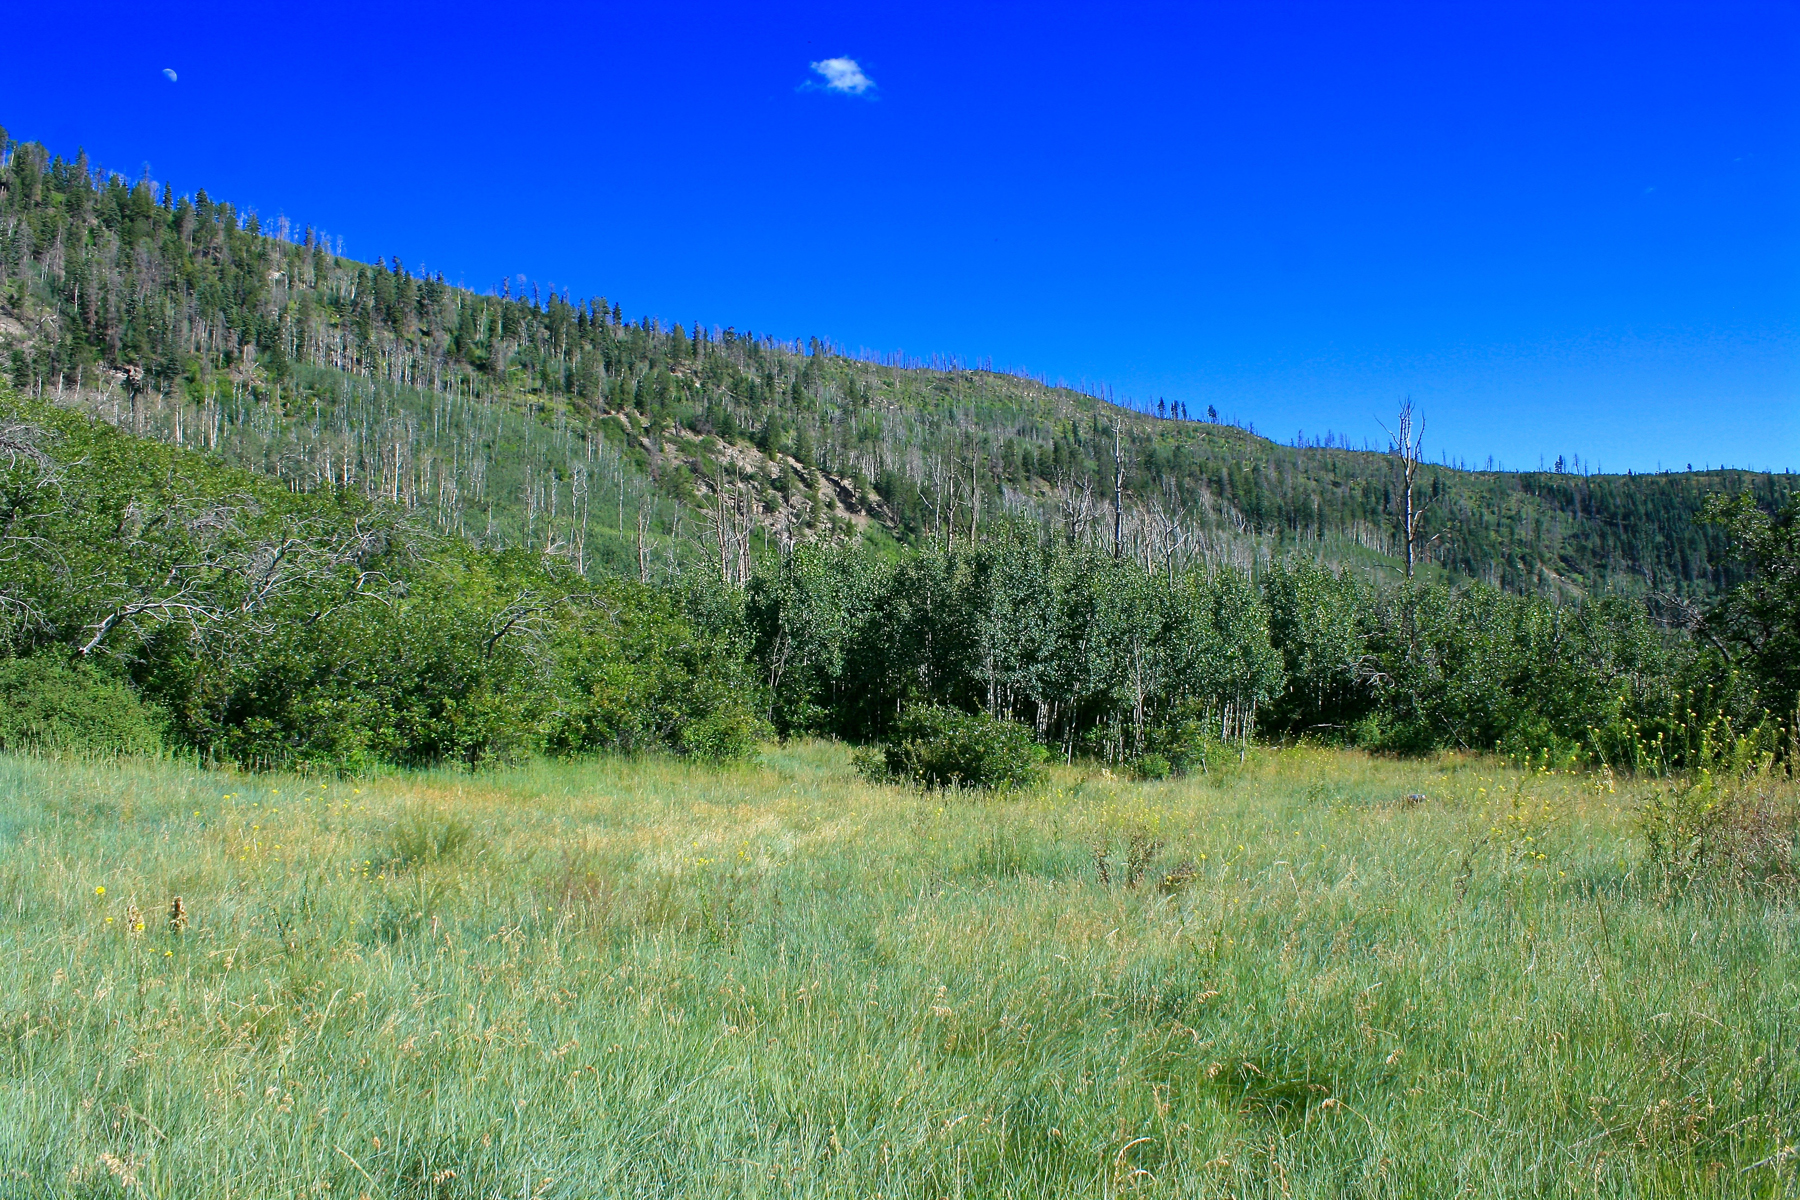 Land for Sale at Red Tail Mountain Ranch Lot 19 464 Star Peak Durango, Colorado 81301 United States